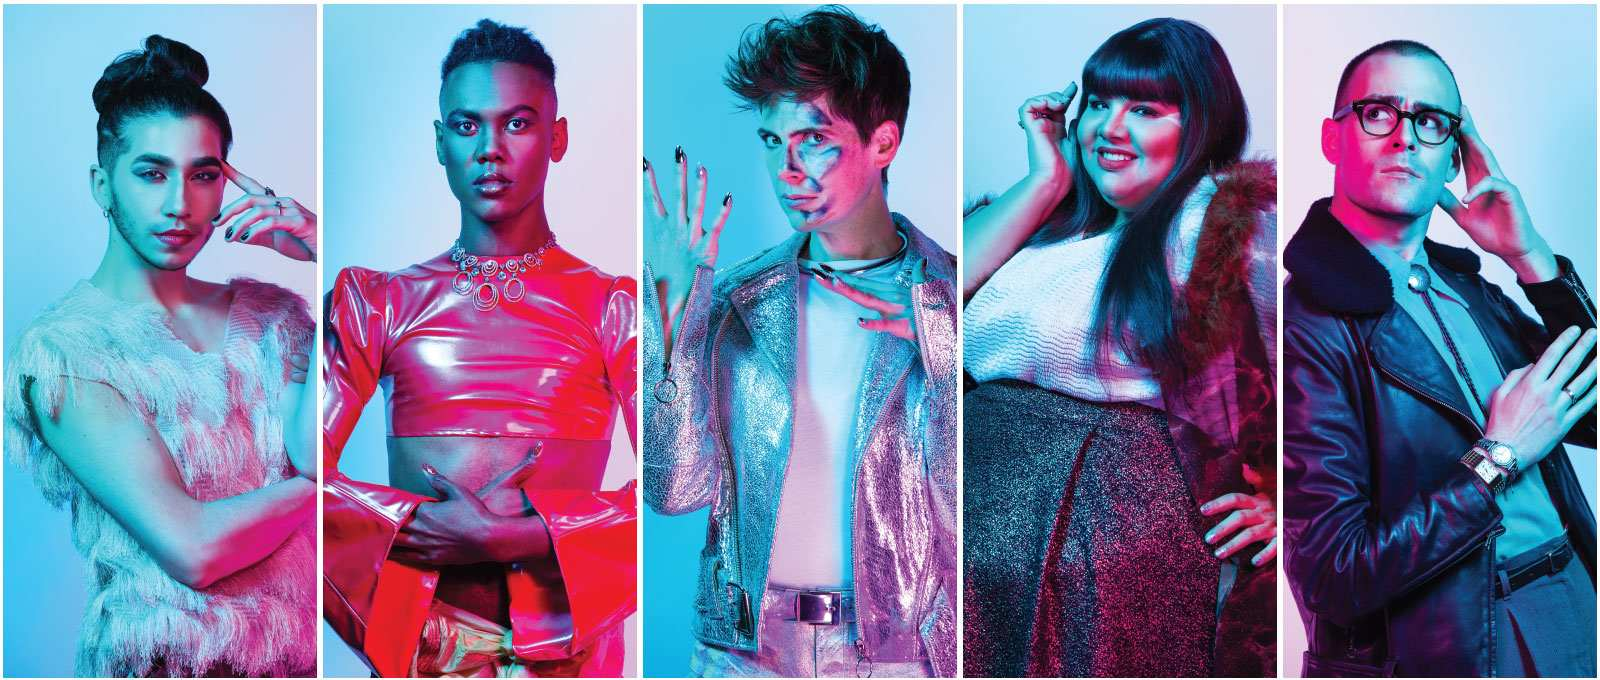 Buddies in bad times is a theater which becomes a gay club at night